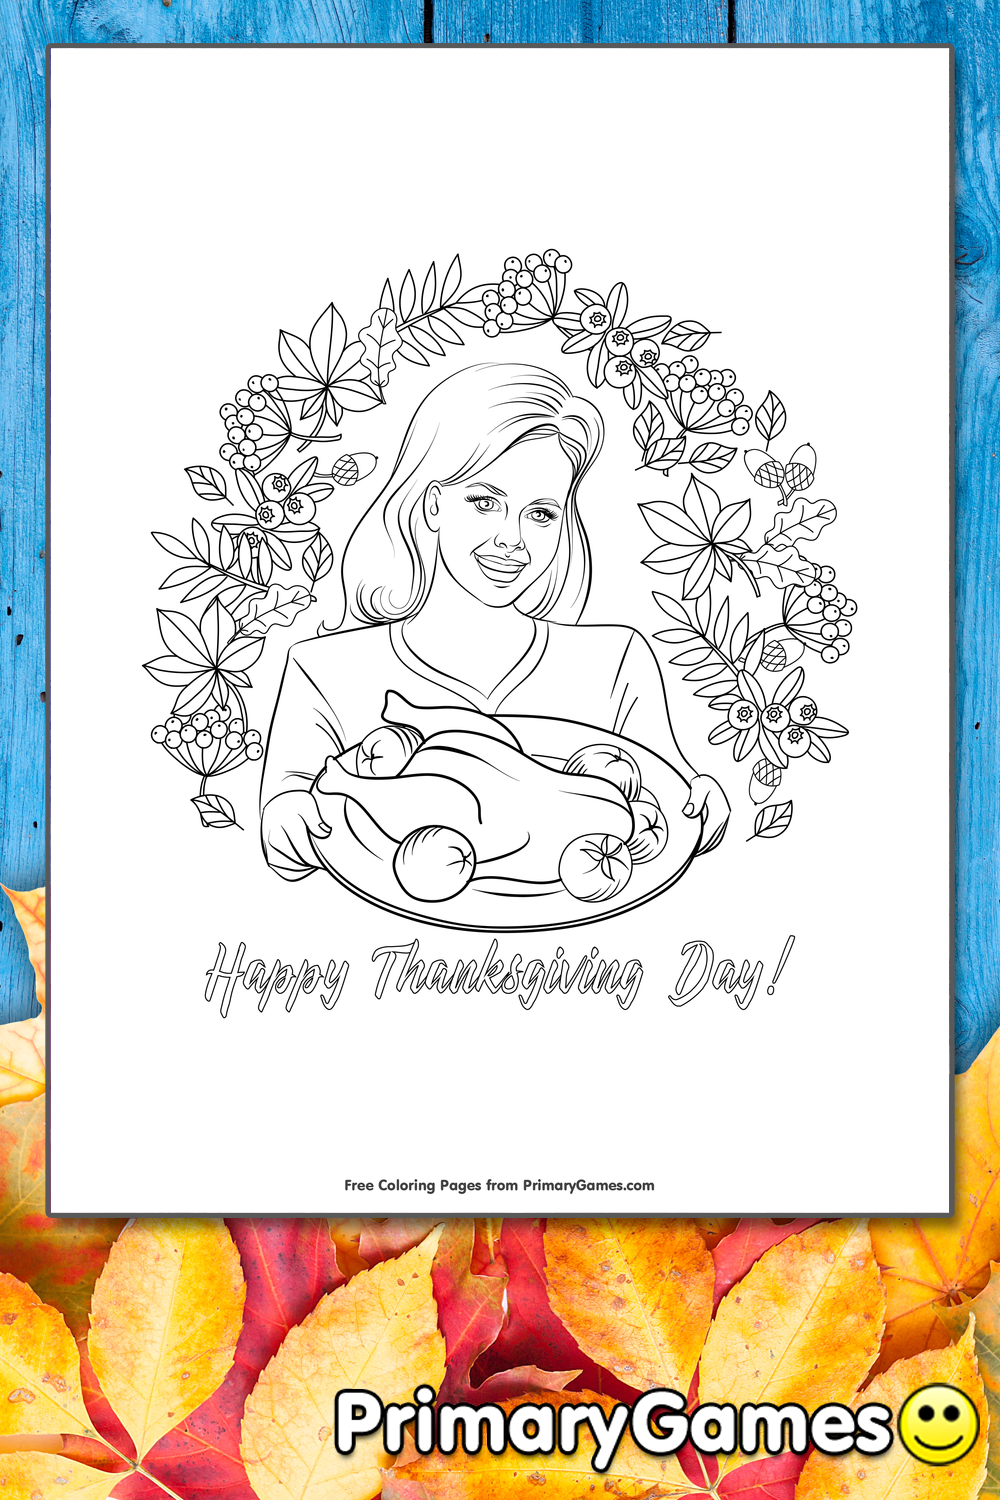 coloring pages cooked turkey - photo#41